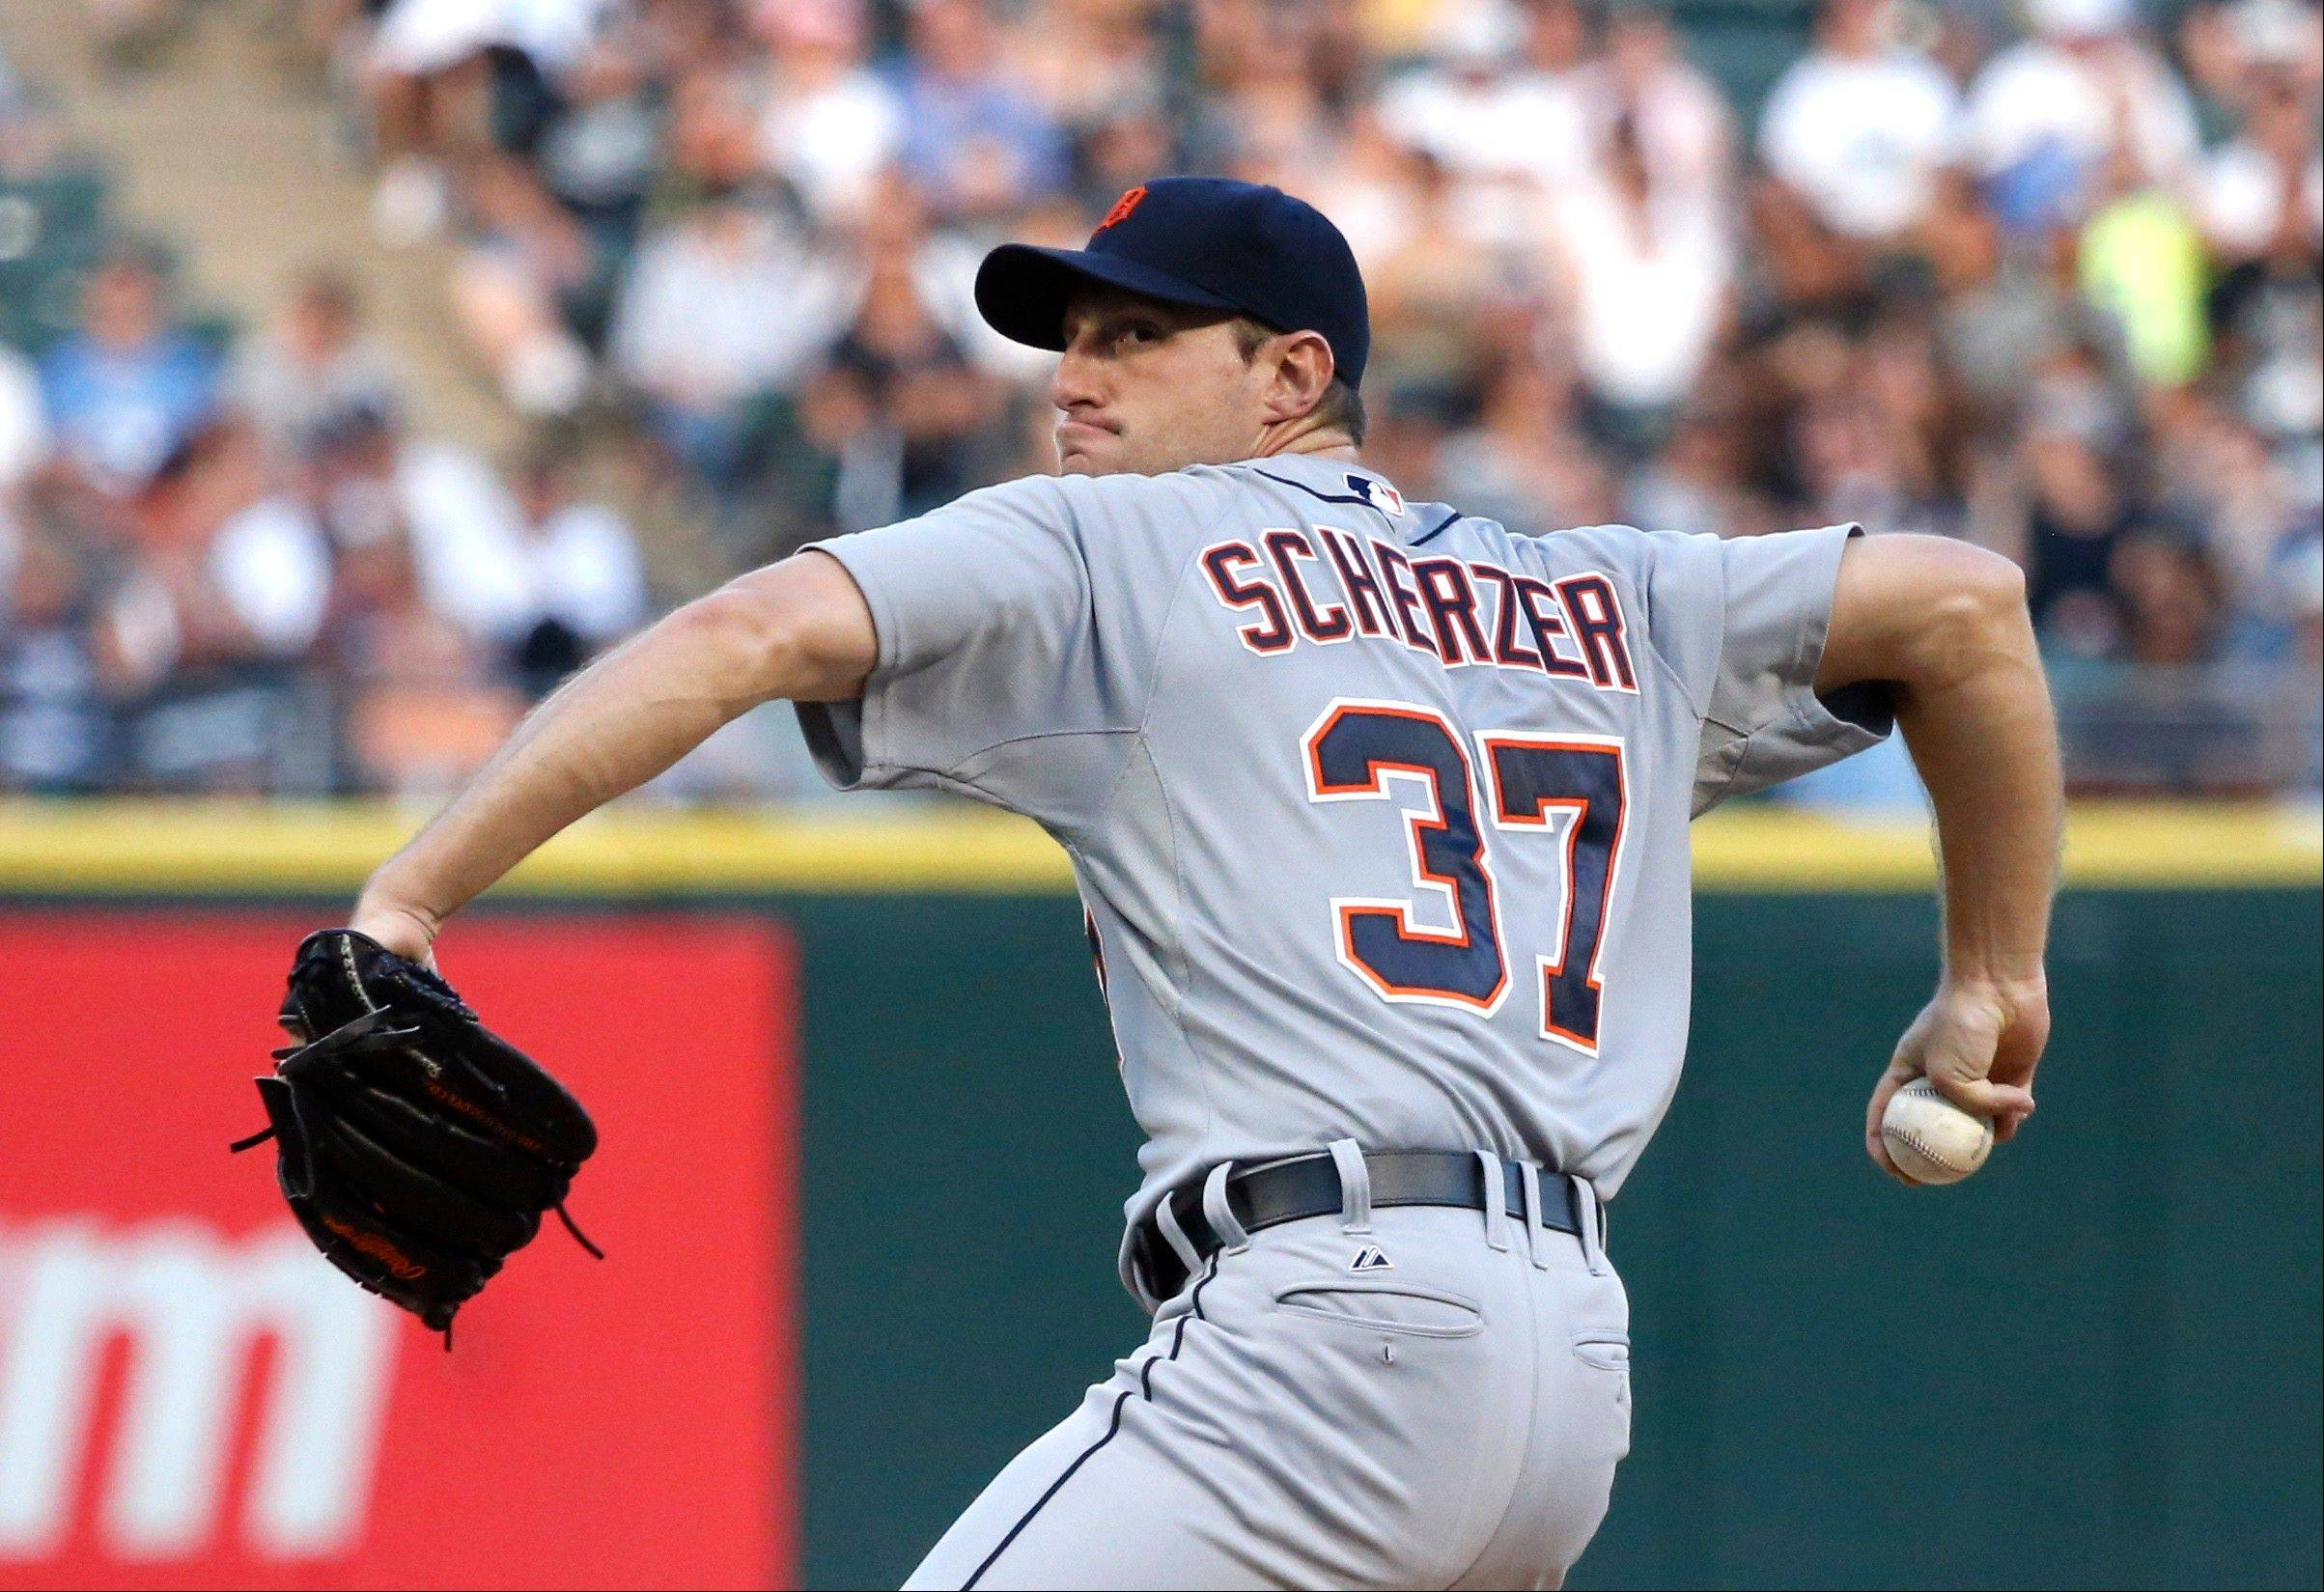 Tigers starting pitcher Max Scherzer delivers during the first inning Monday against the White Sox in Chicago.